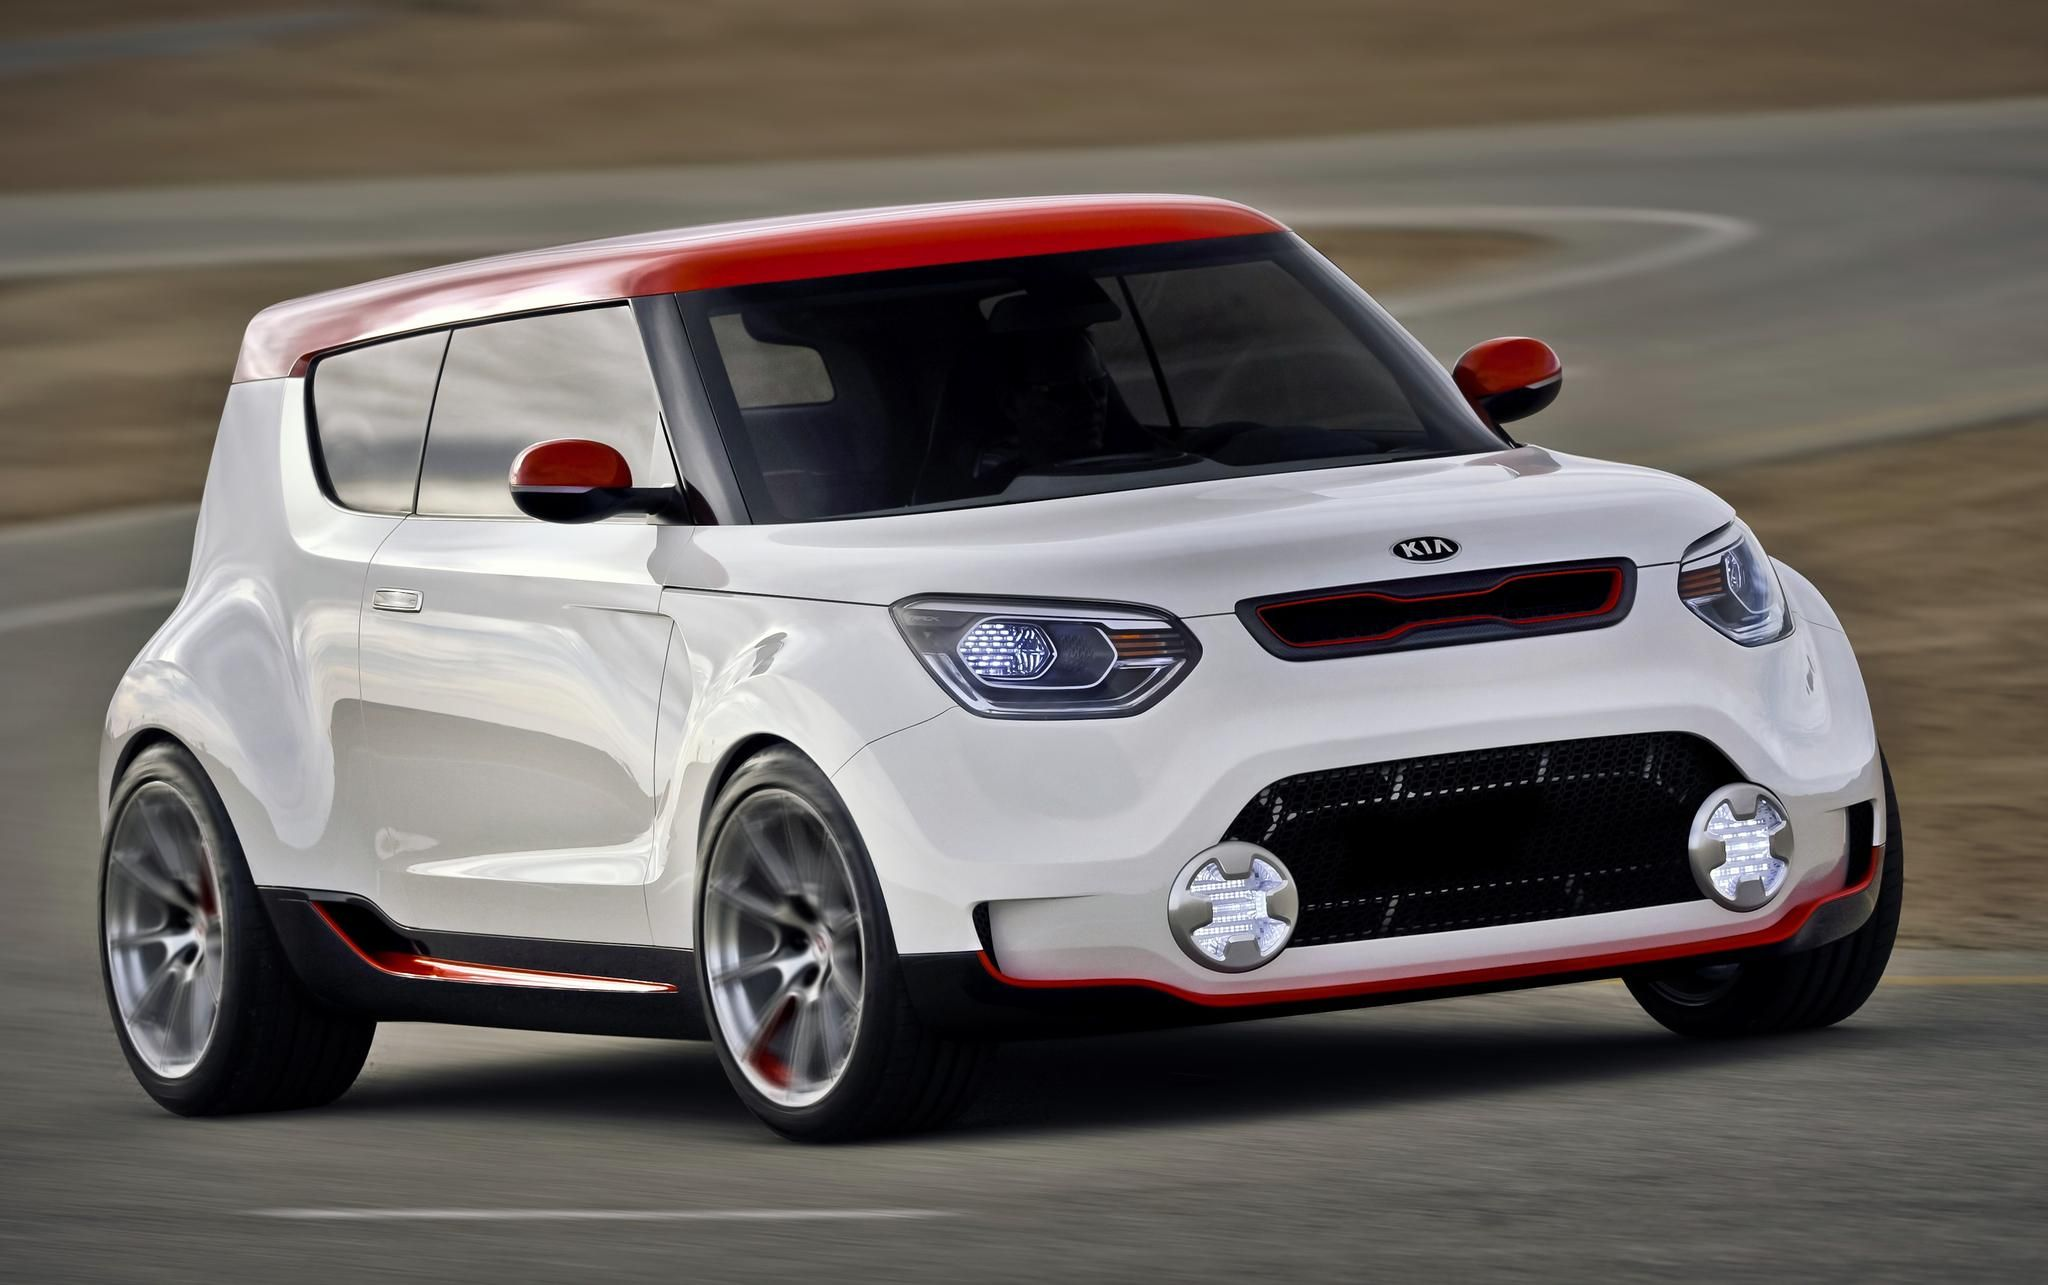 Kia Unleashes Trackster Concept In 2020 Kia Soul Kia Best New Cars